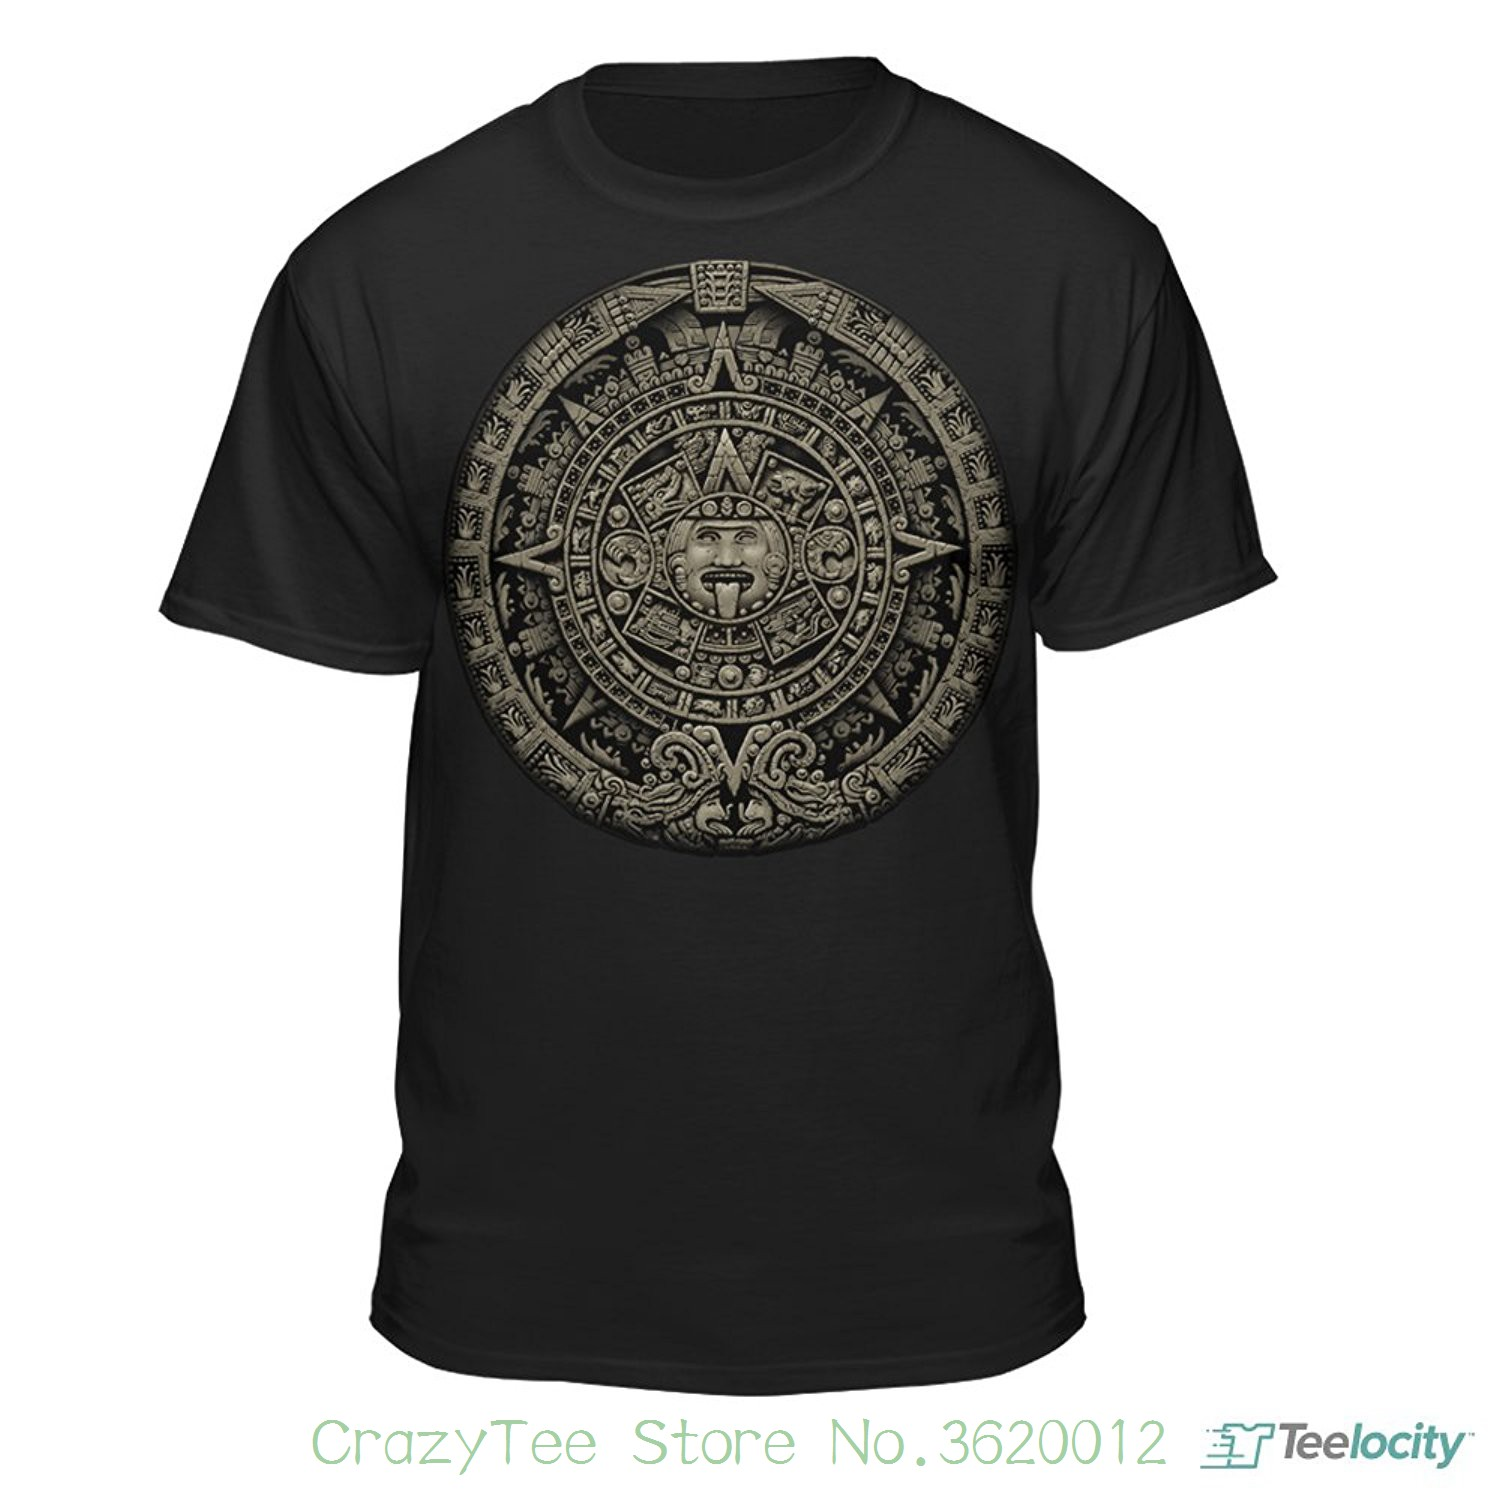 e62091d92 100% Cotton Short Sleeve Summer T-shirt Aztec Calendar Sun Stone Mexican  Art Carving